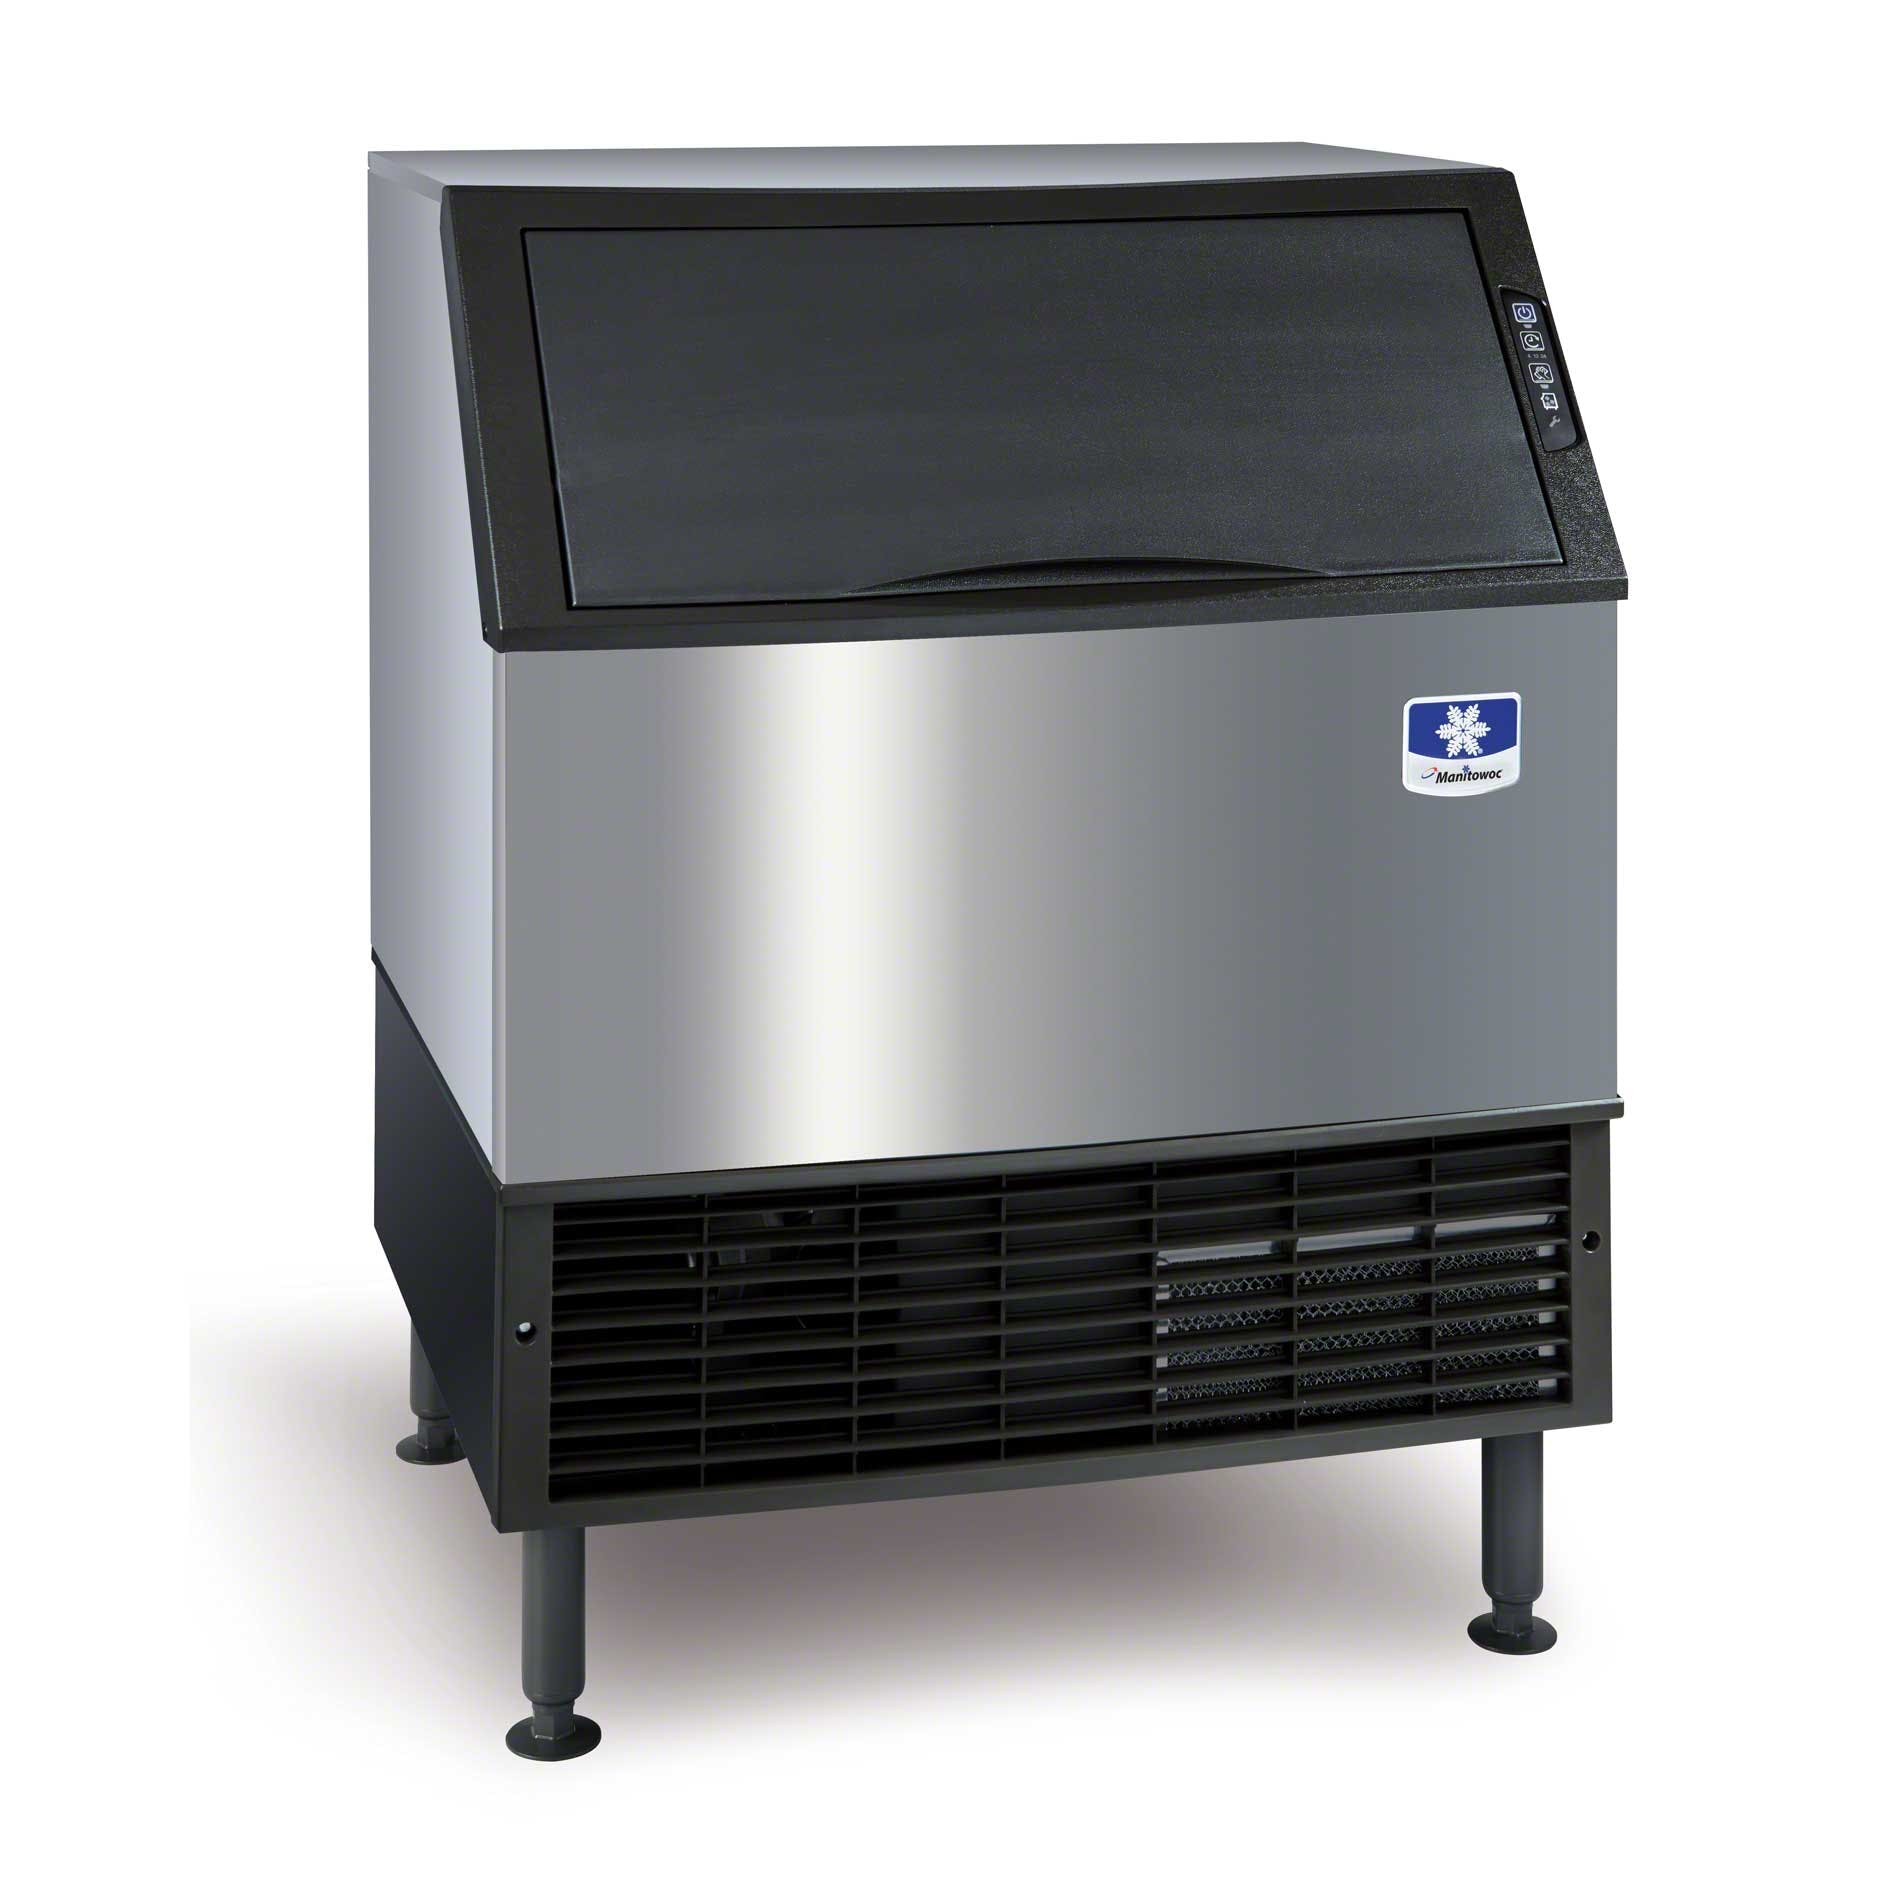 Manitowoc - UR-0310A 292 lb Cube Undercounter Ice Machine - U-310 Neo Series Ice machine sold by Food Service Warehouse